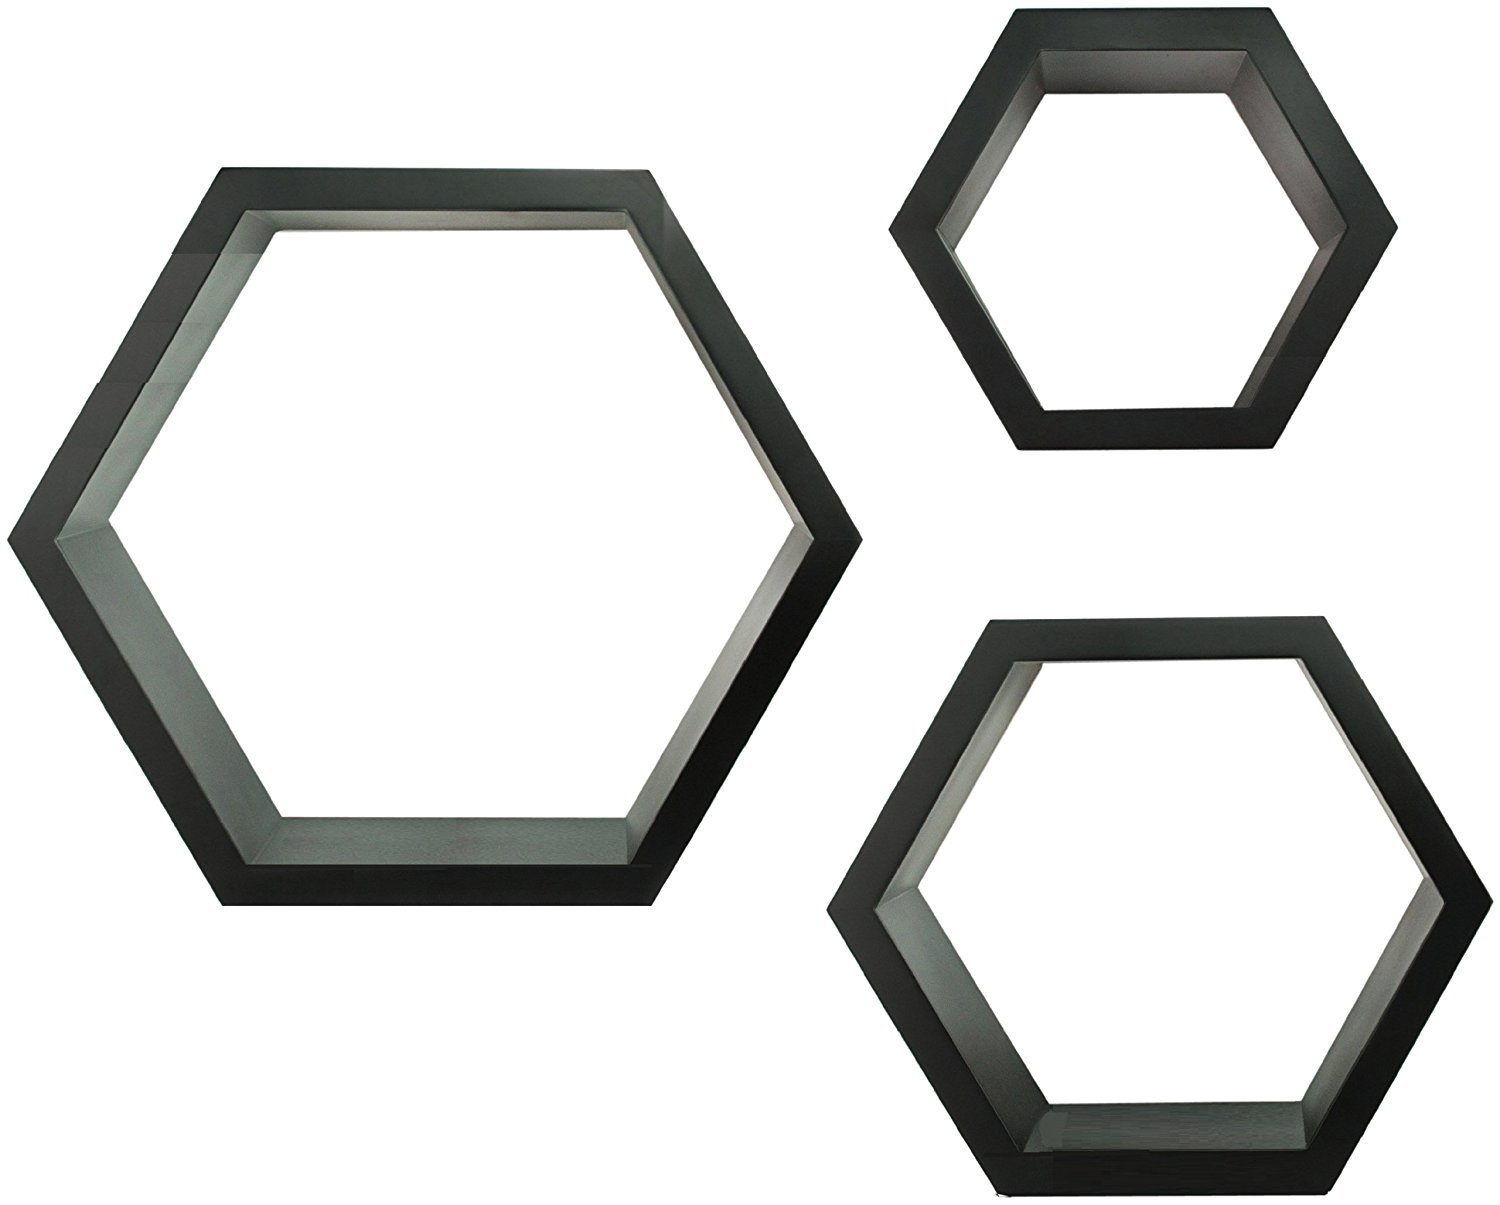 GALLERY SOLUTIONS Black HexaGallery Geometric Decorative Wall Mounted Floating Shelves, Set of 3 NBG Home 10FW1585